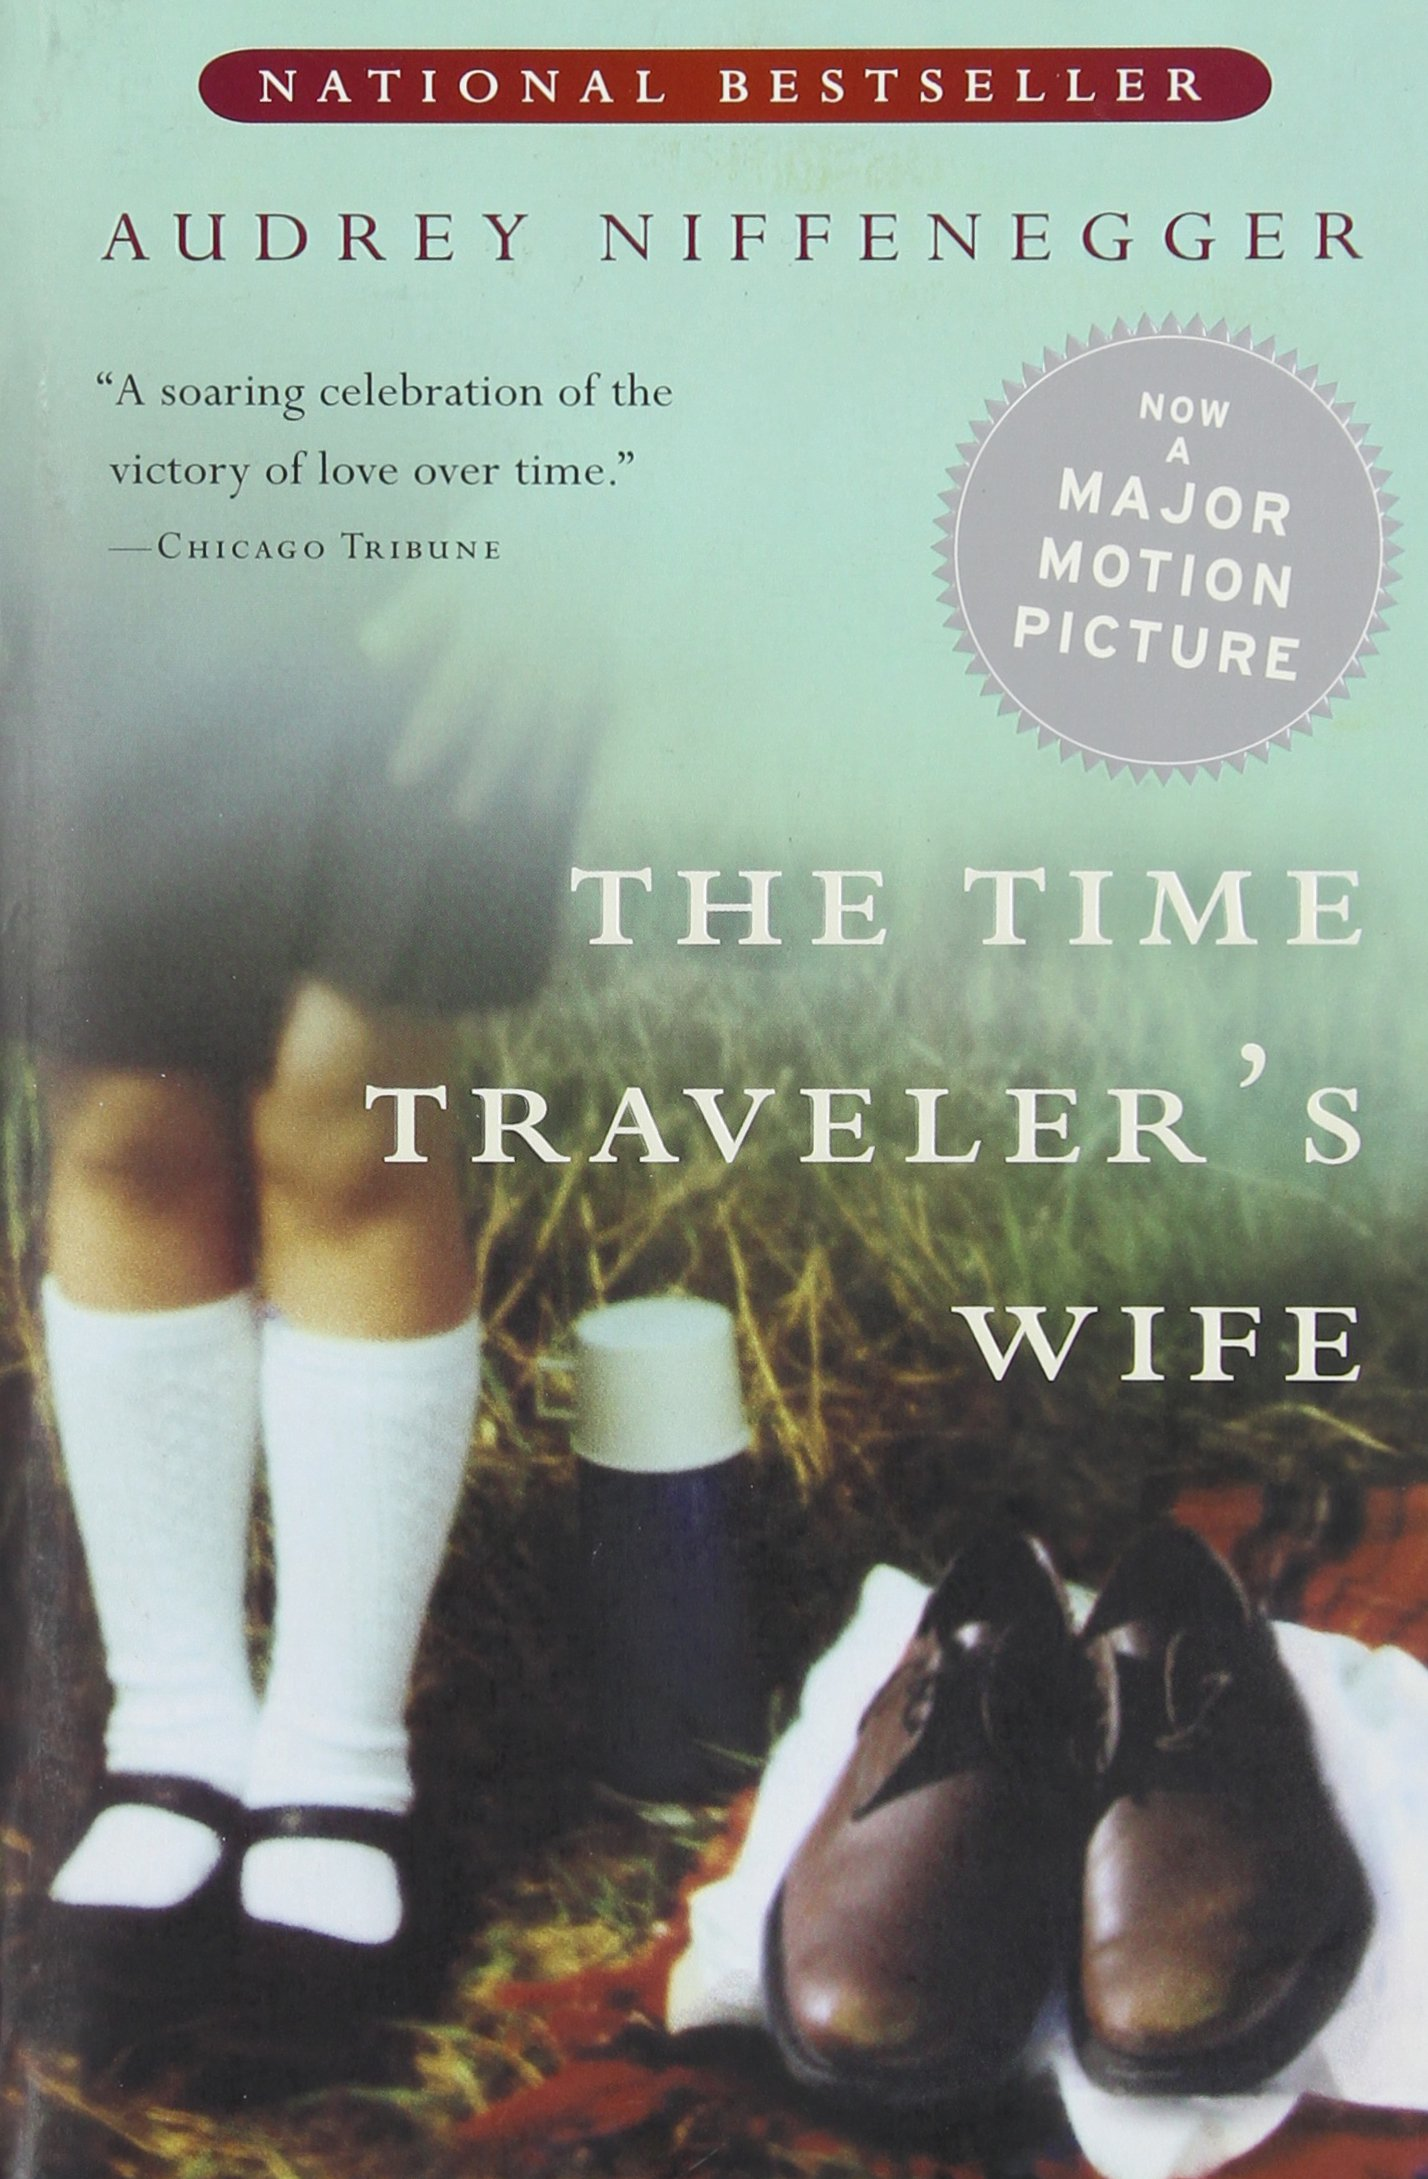 Amazon.com: The Time Traveler's Wife (9780224072373): Audrey ...